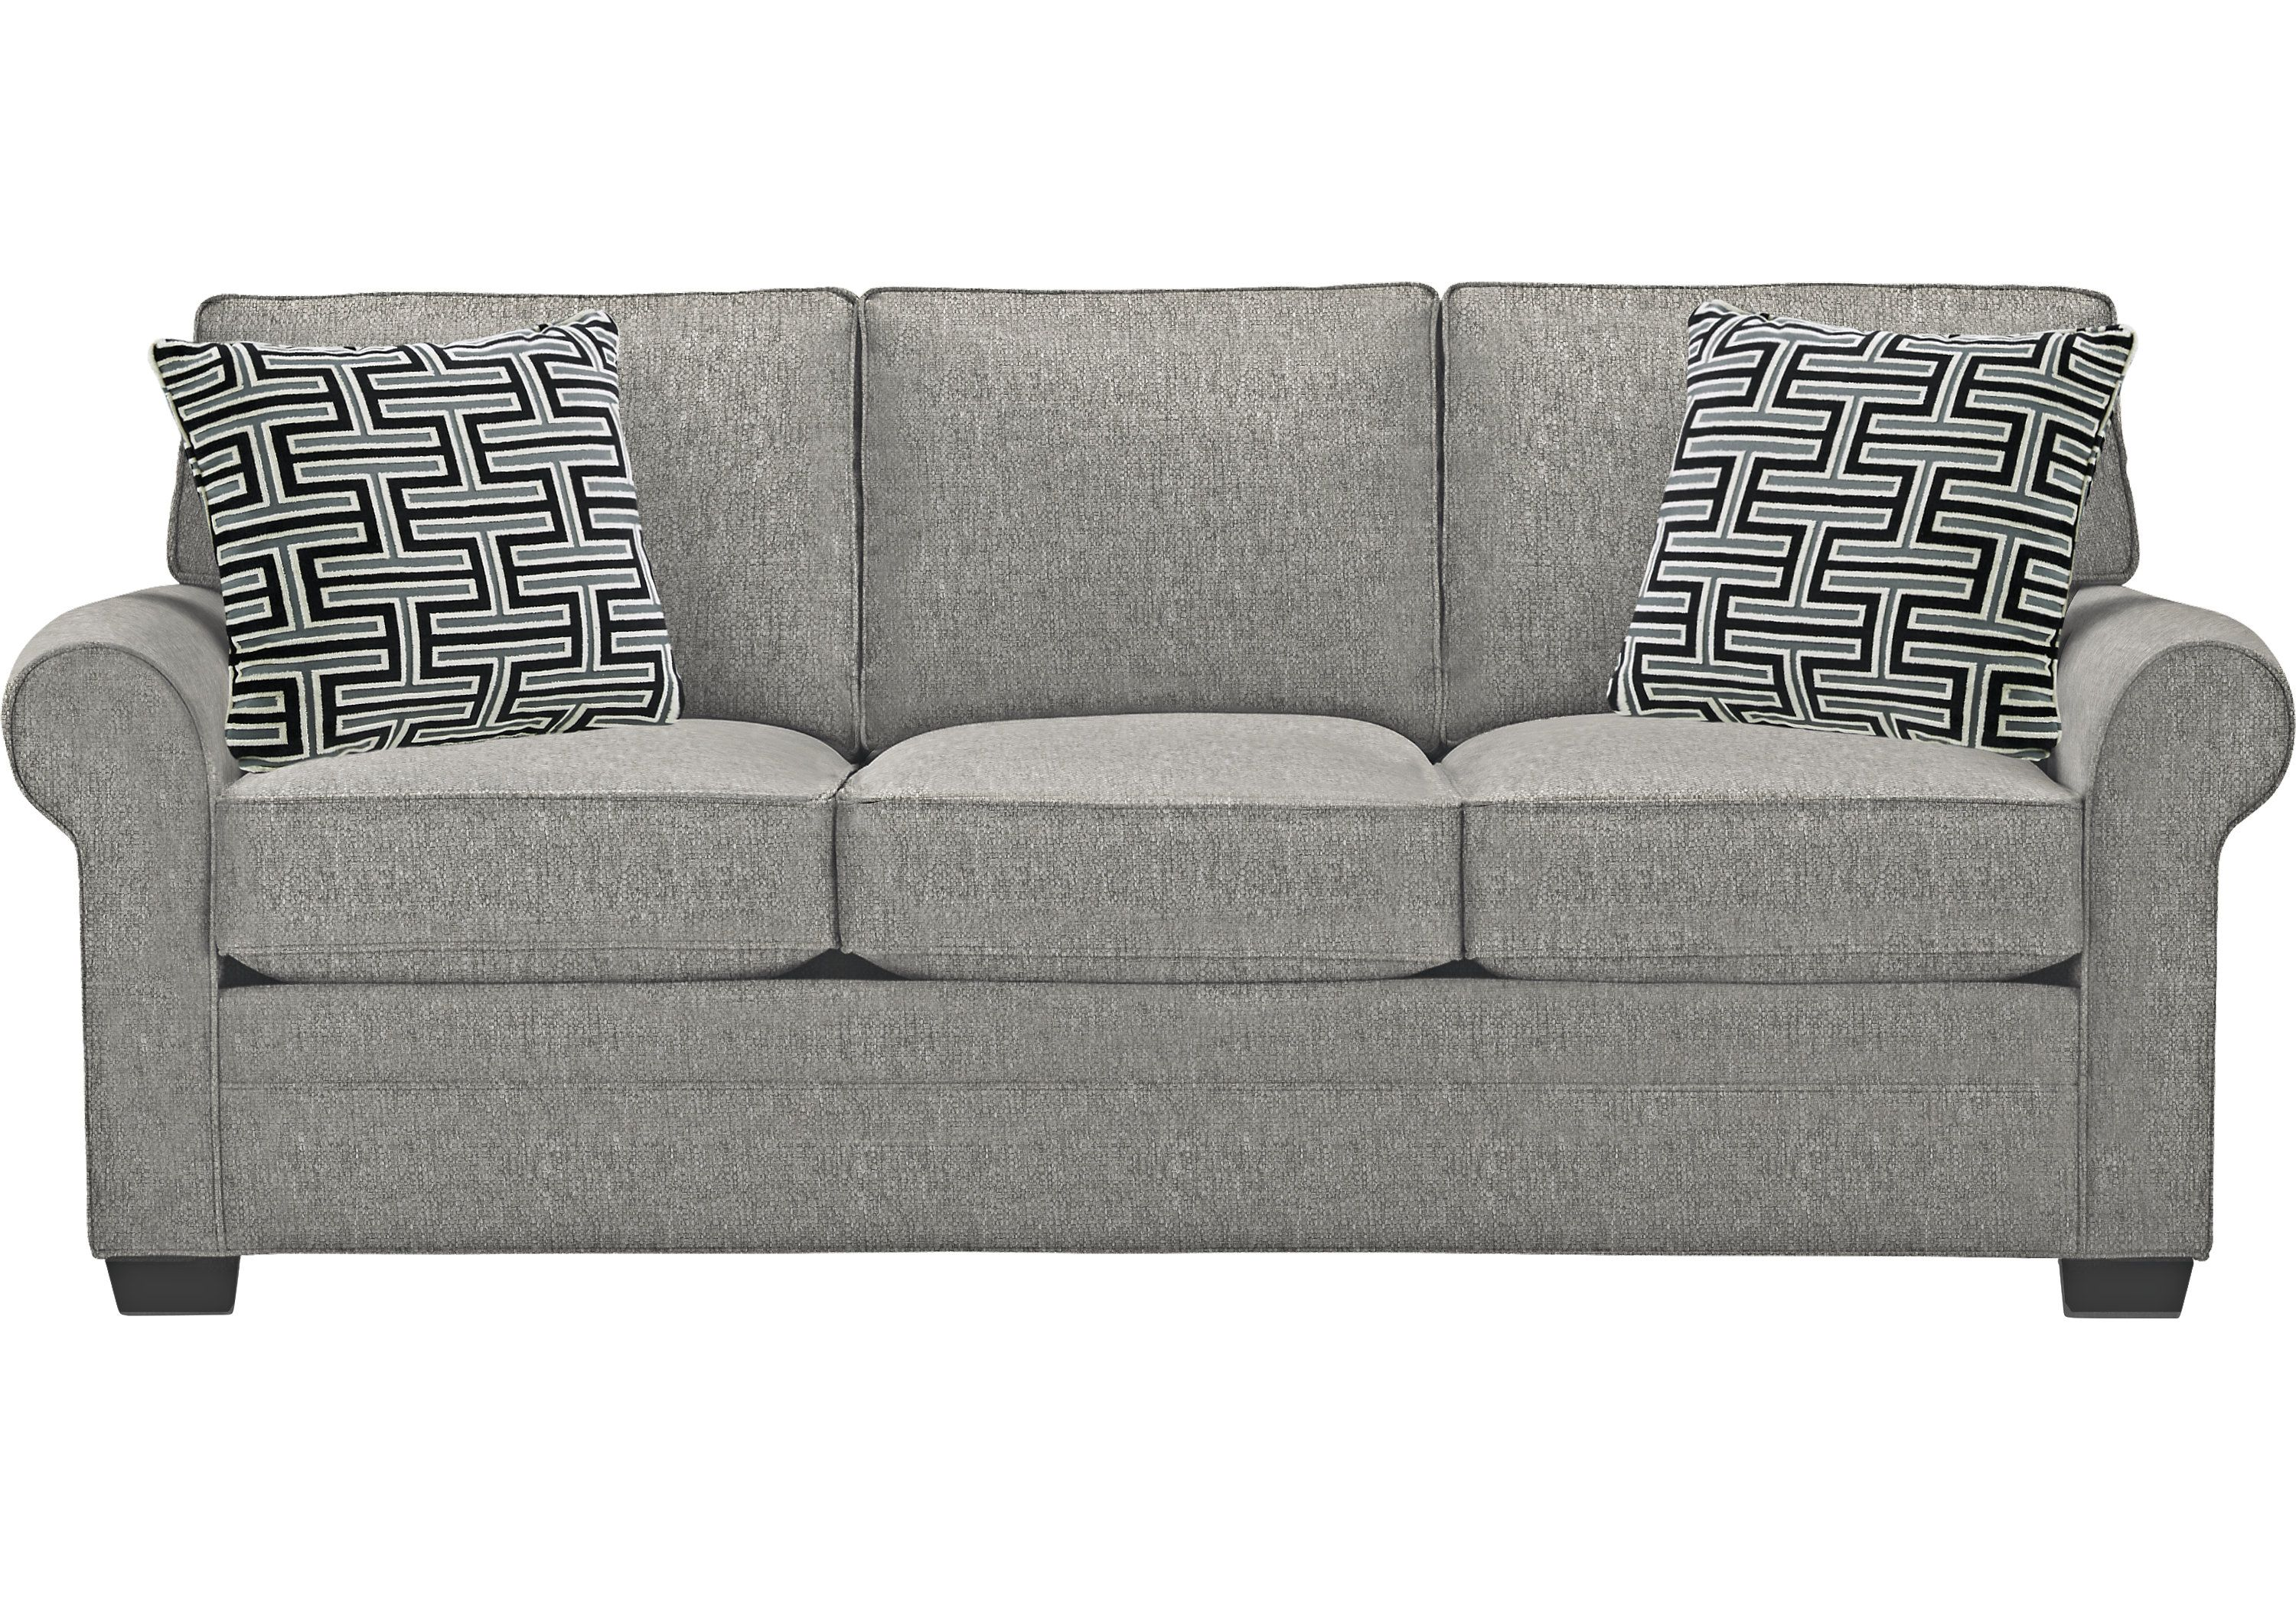 Stupendous Bellingham Gray Sofa Remodel In 2019 Gray Sofa Sofa Creativecarmelina Interior Chair Design Creativecarmelinacom